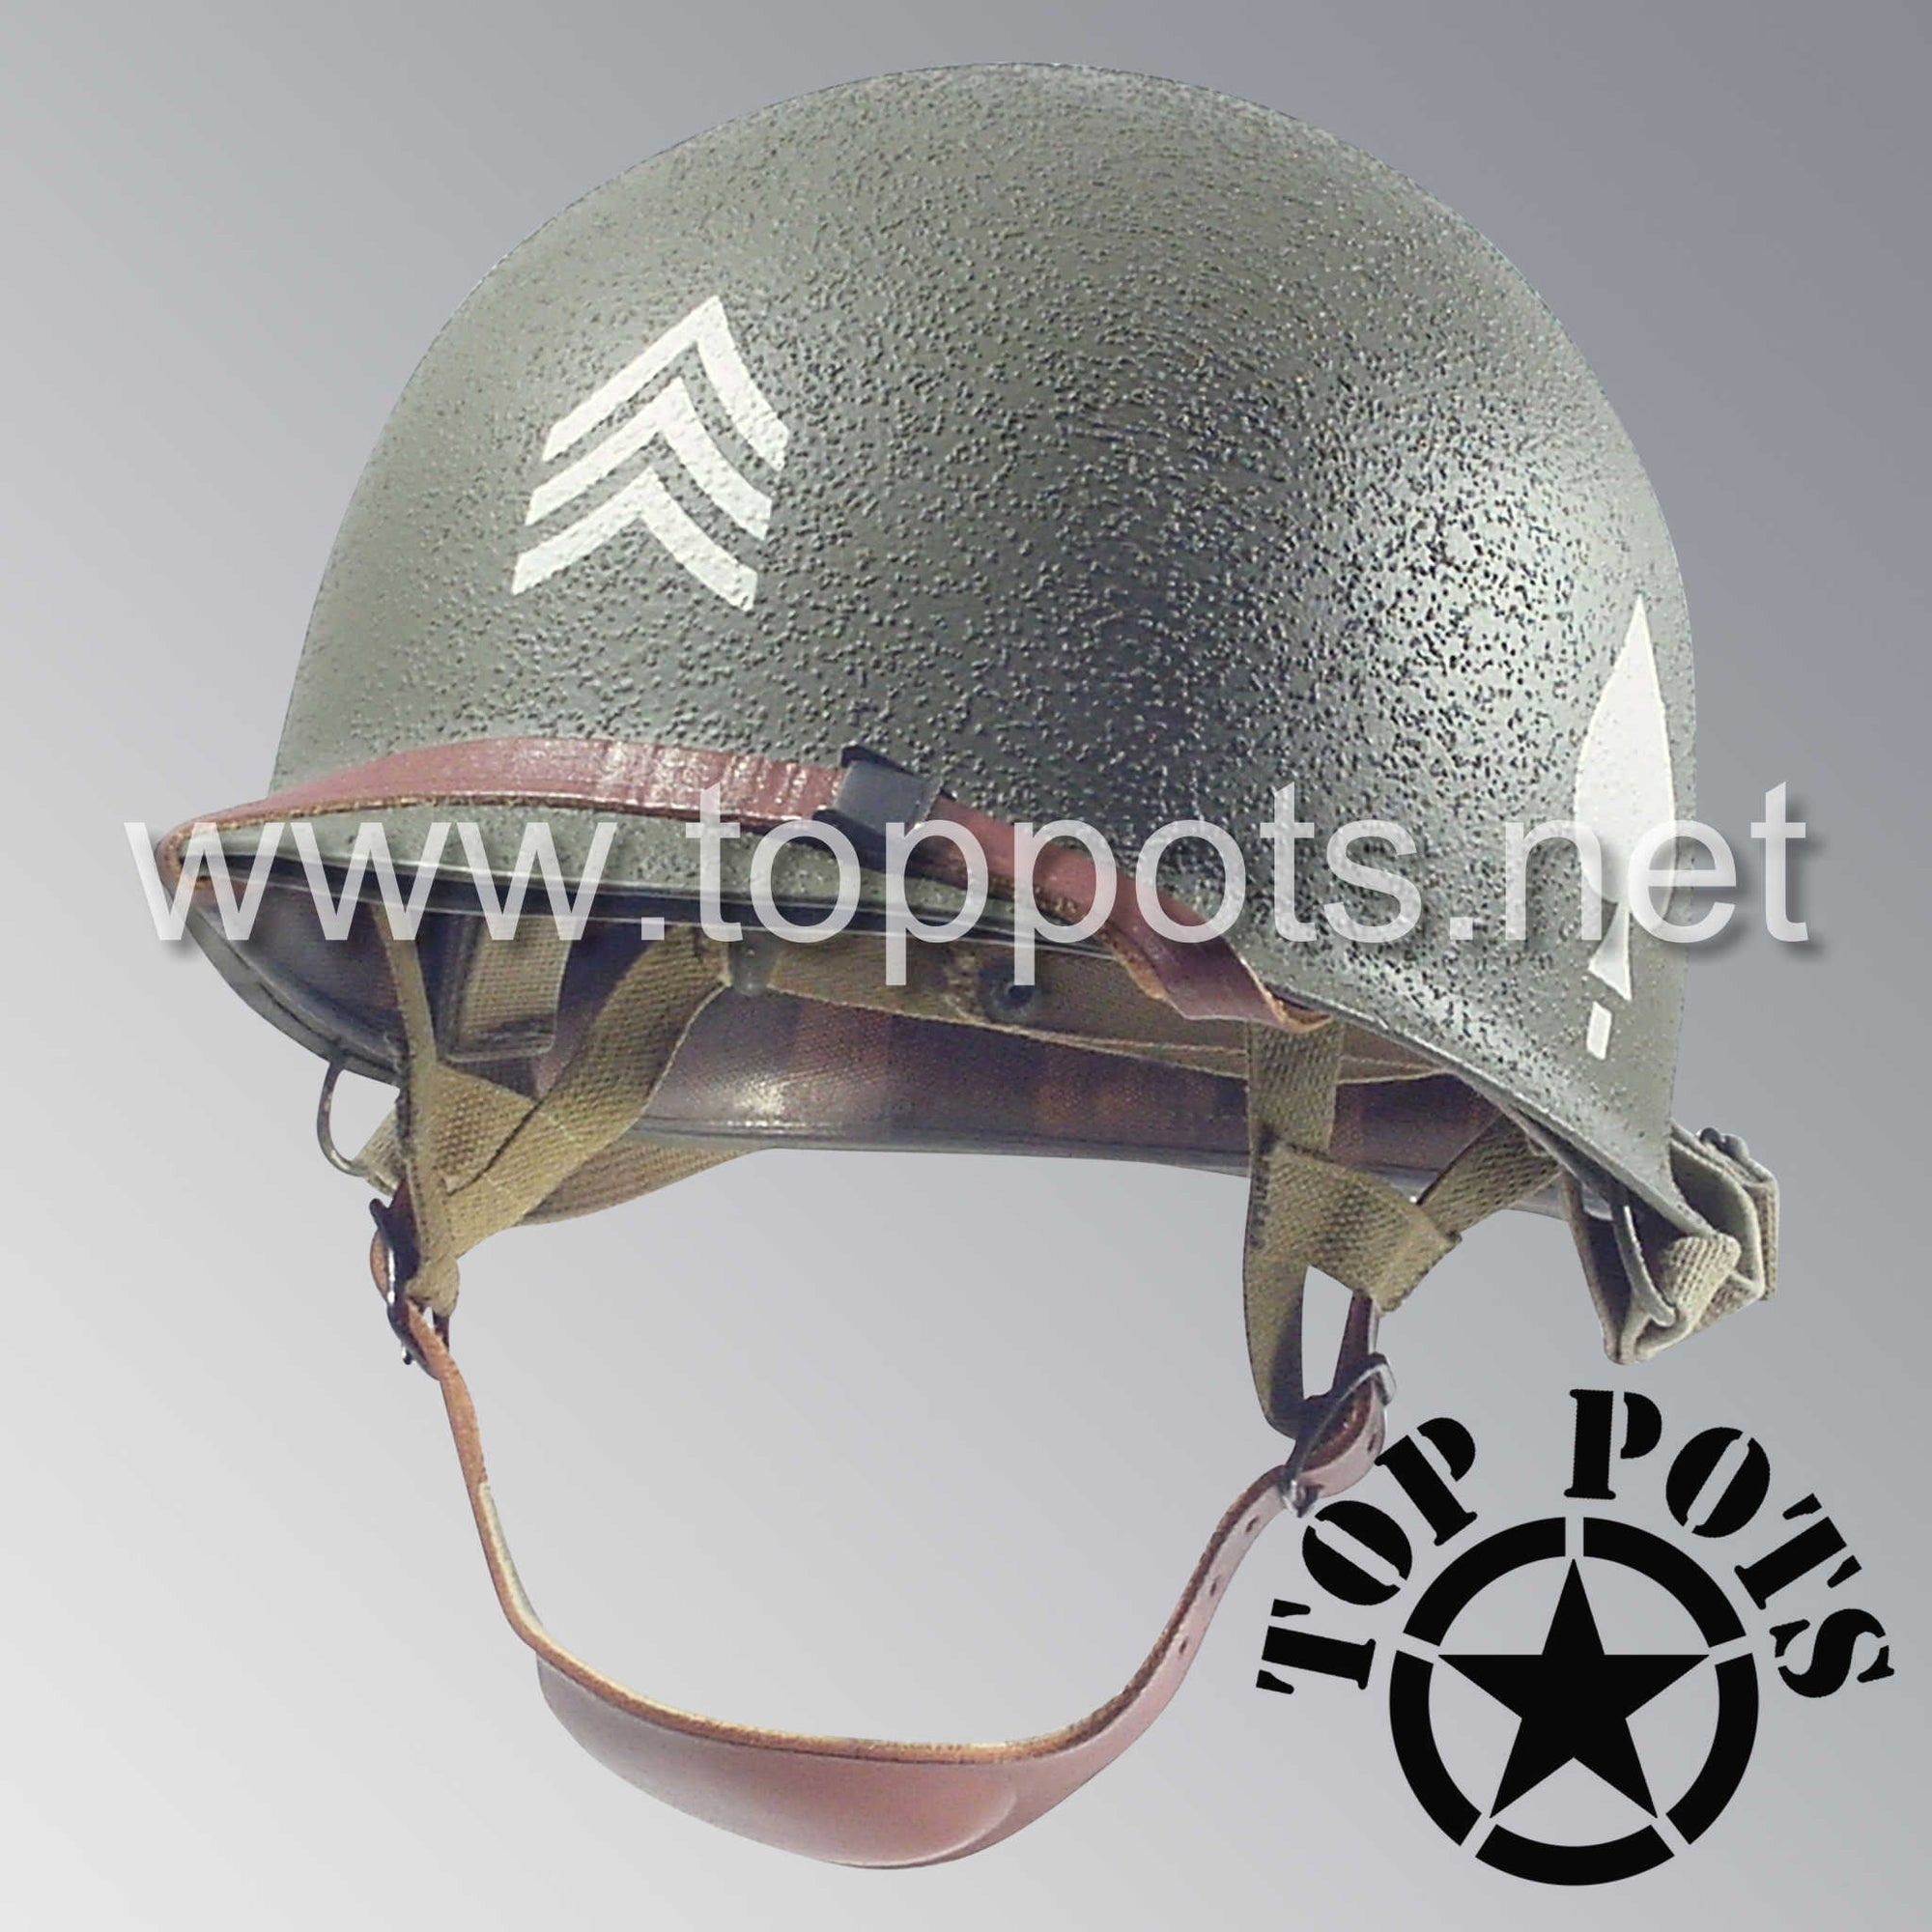 Image 1 of WWII US Army Restored Original M2 Paratrooper Airborne Helmet D Bale Shell and Liner with 506th PIR 2nd Battalion Technical Sergeant NCO Emblem